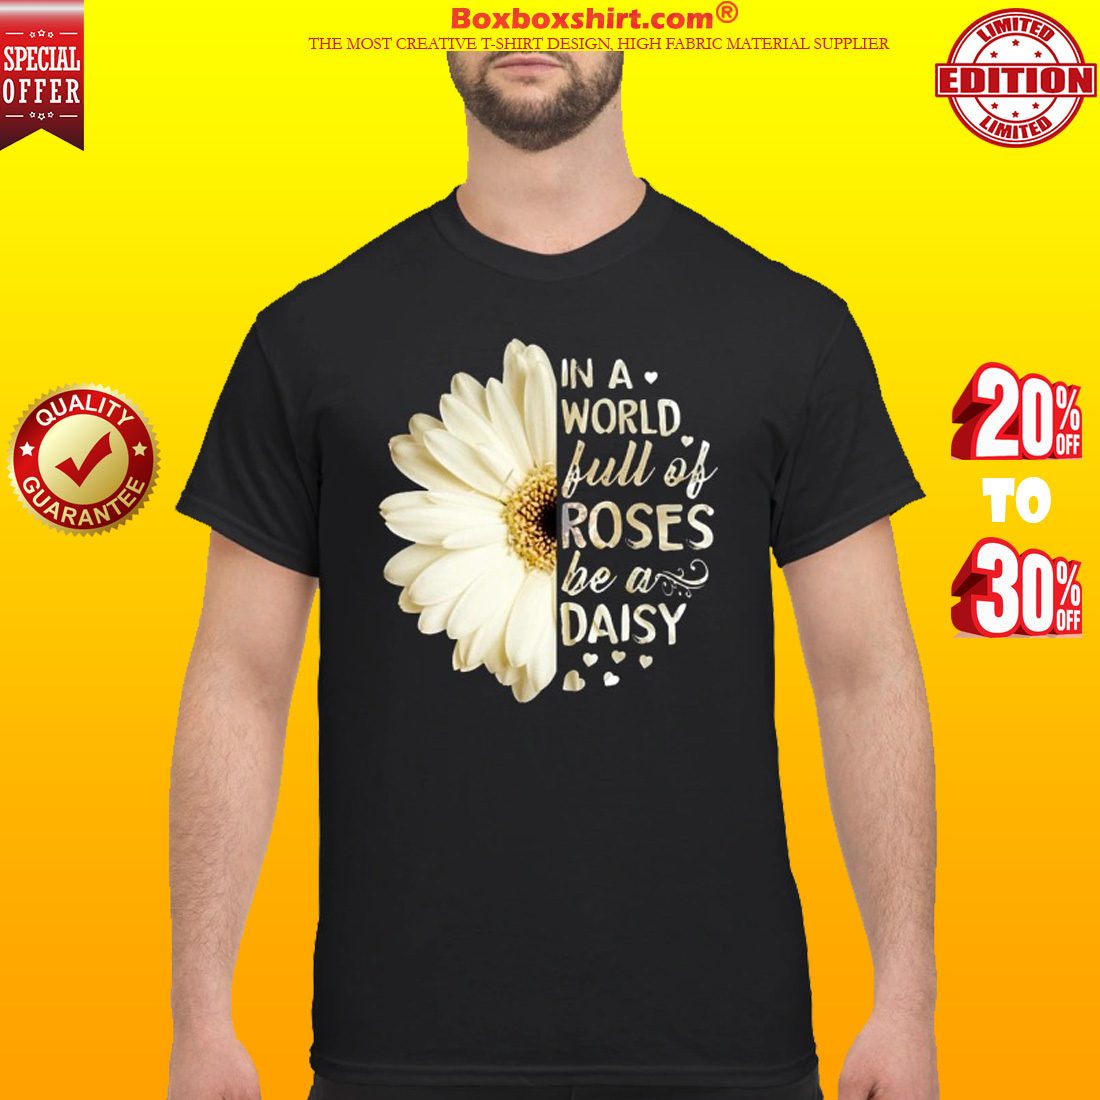 In a world full of roses be a daisy classic shirt